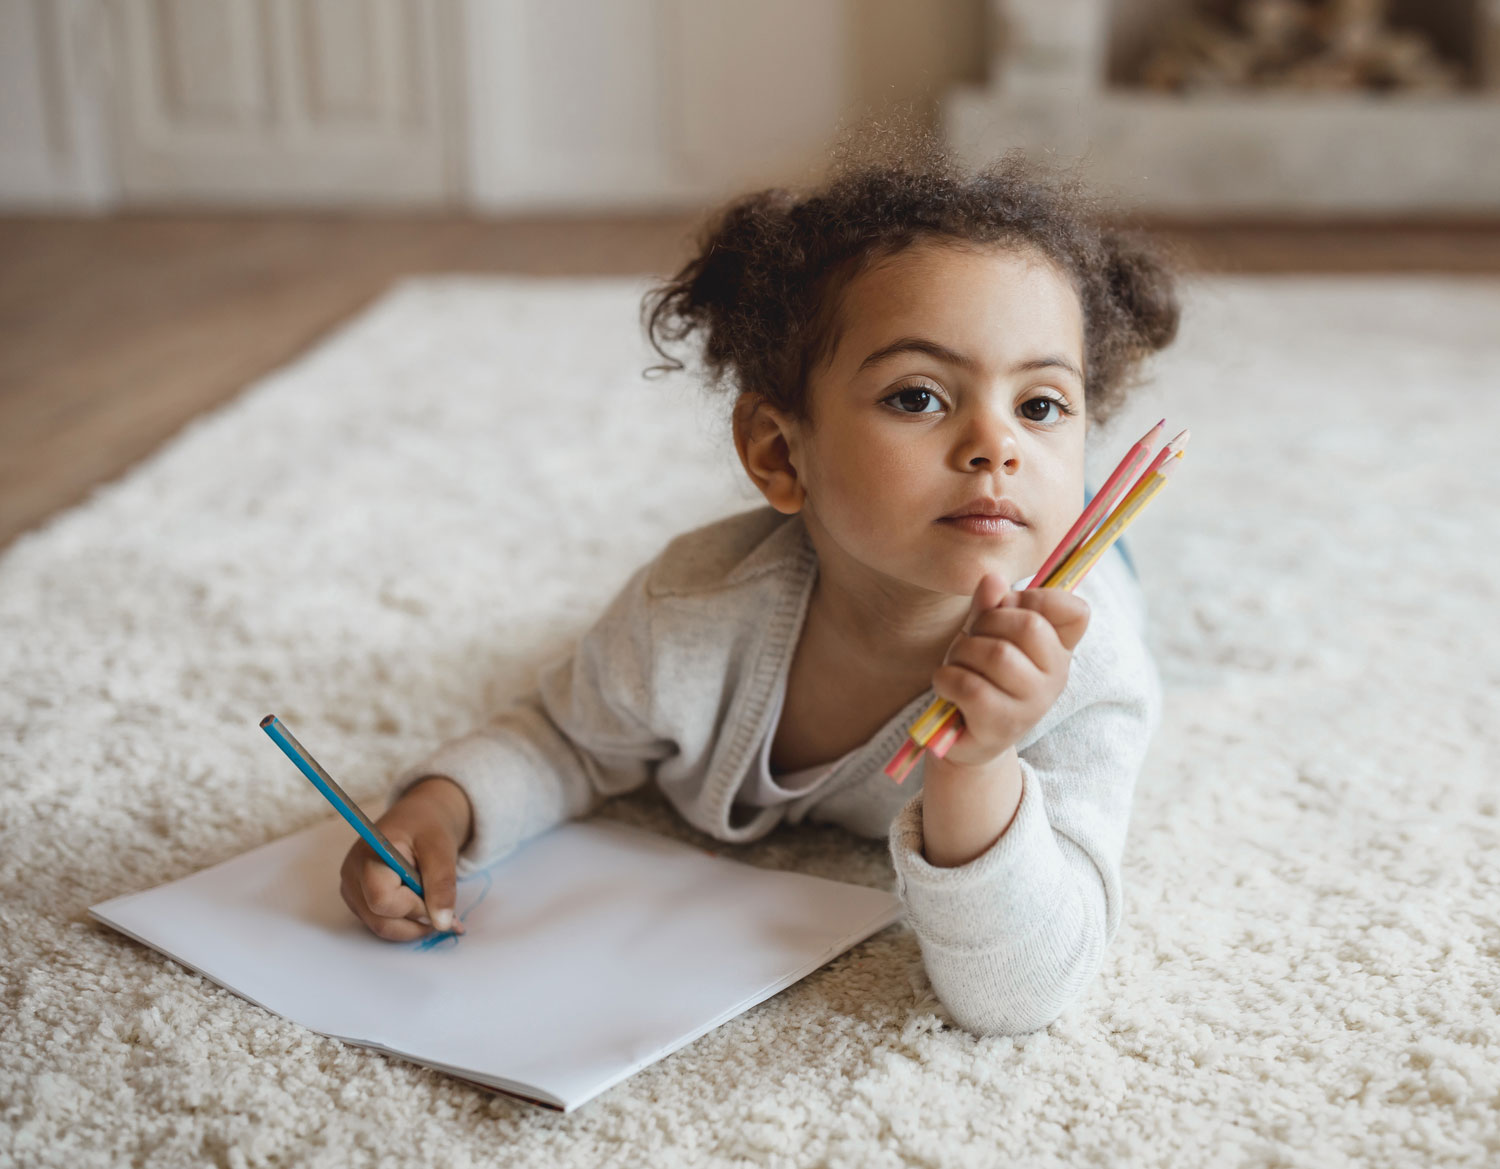 little girl writing on rug